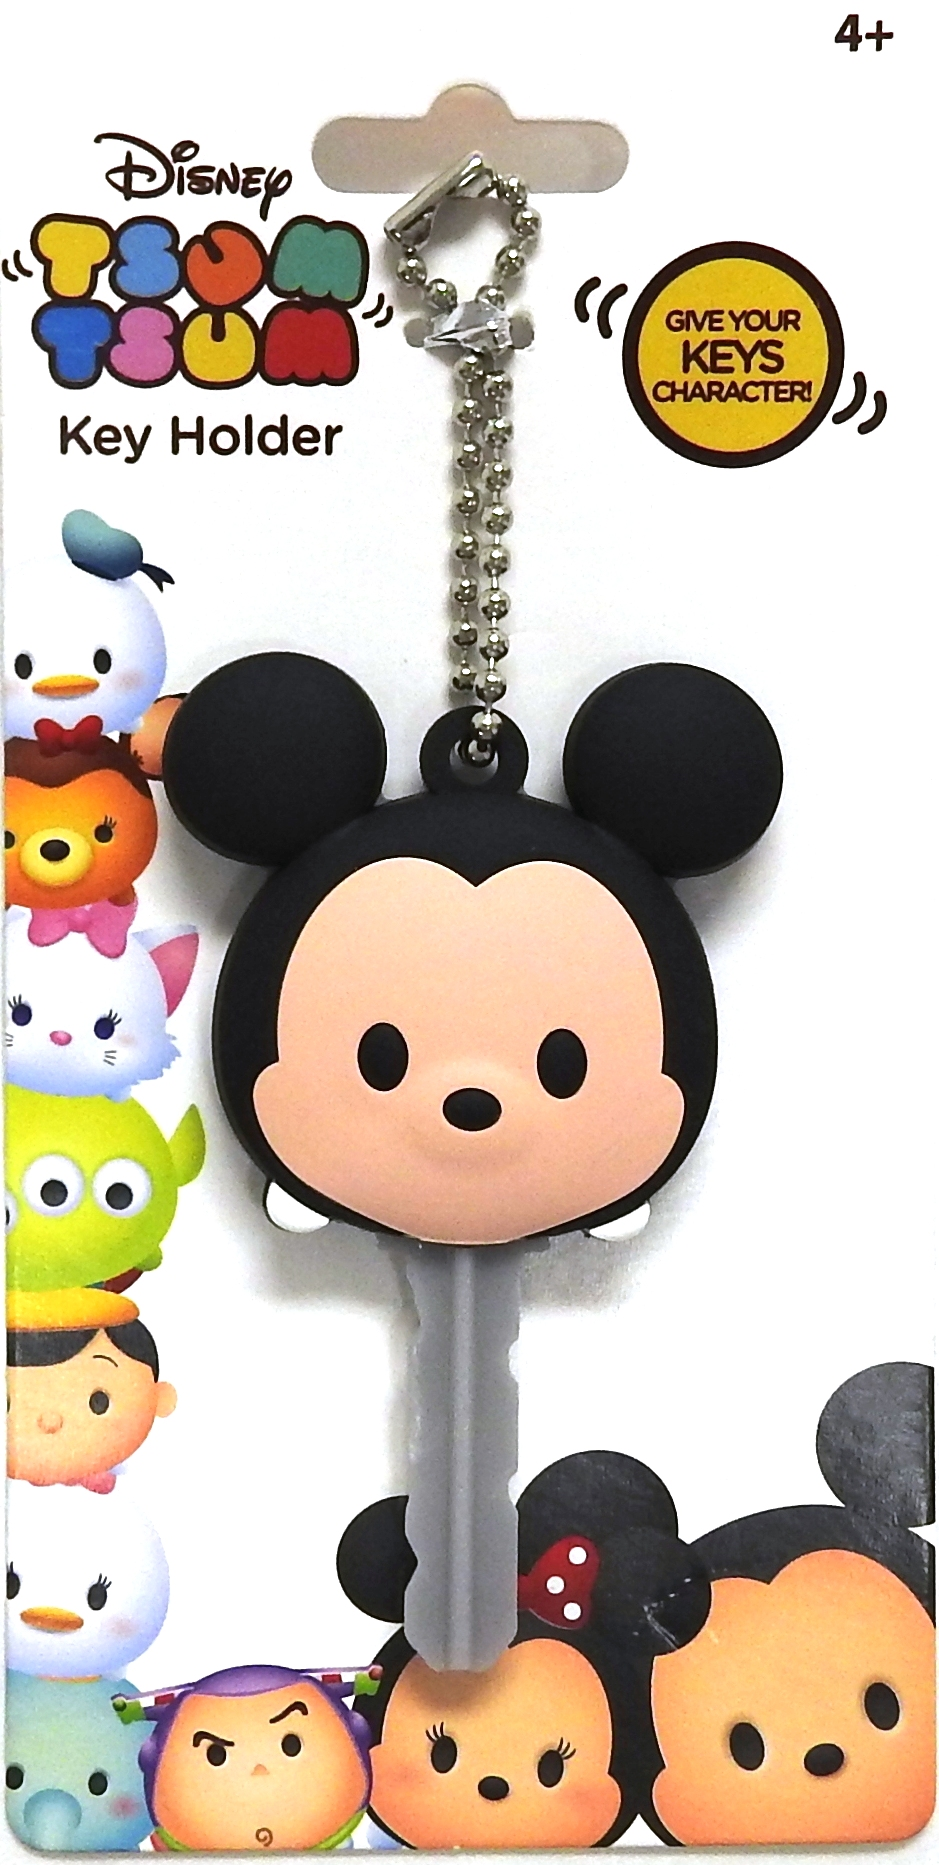 Tsum Tsum - Products by License